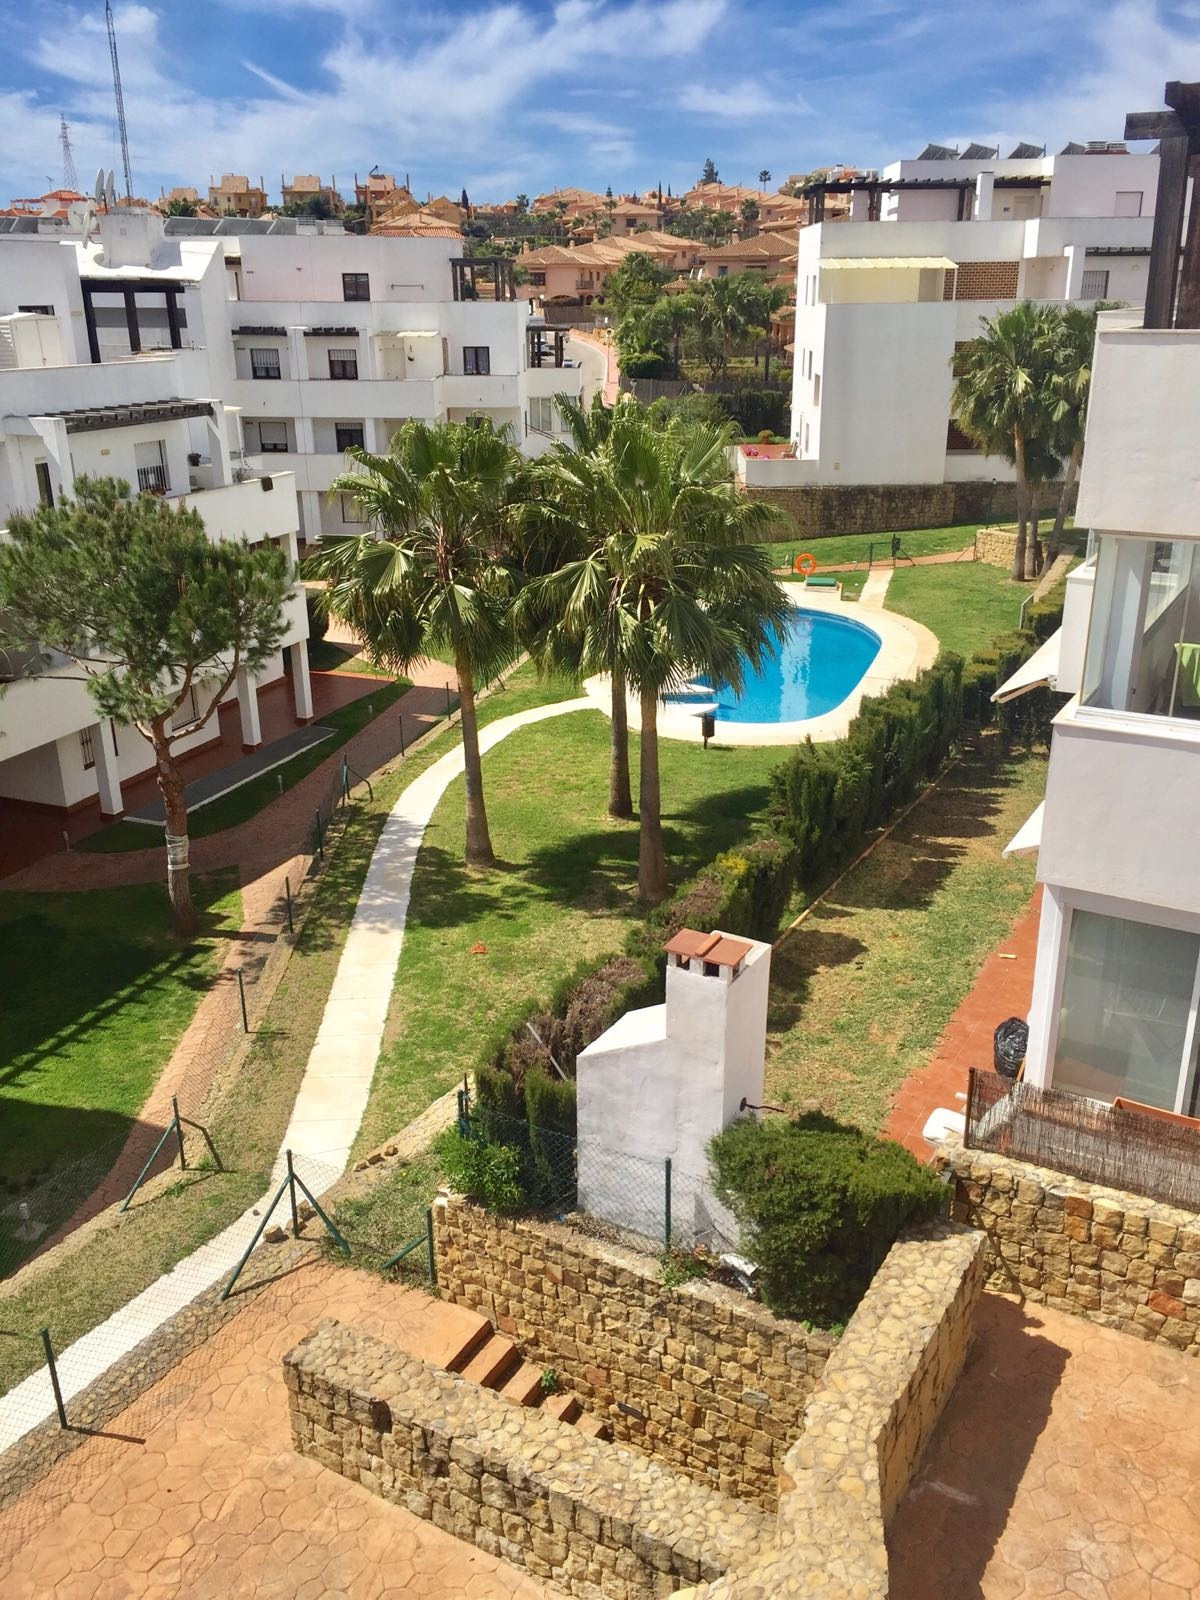 Two bedroom apartment, two bathrooms ideally located in Riviera del Sol. Ideal for seasonal or long , Spain